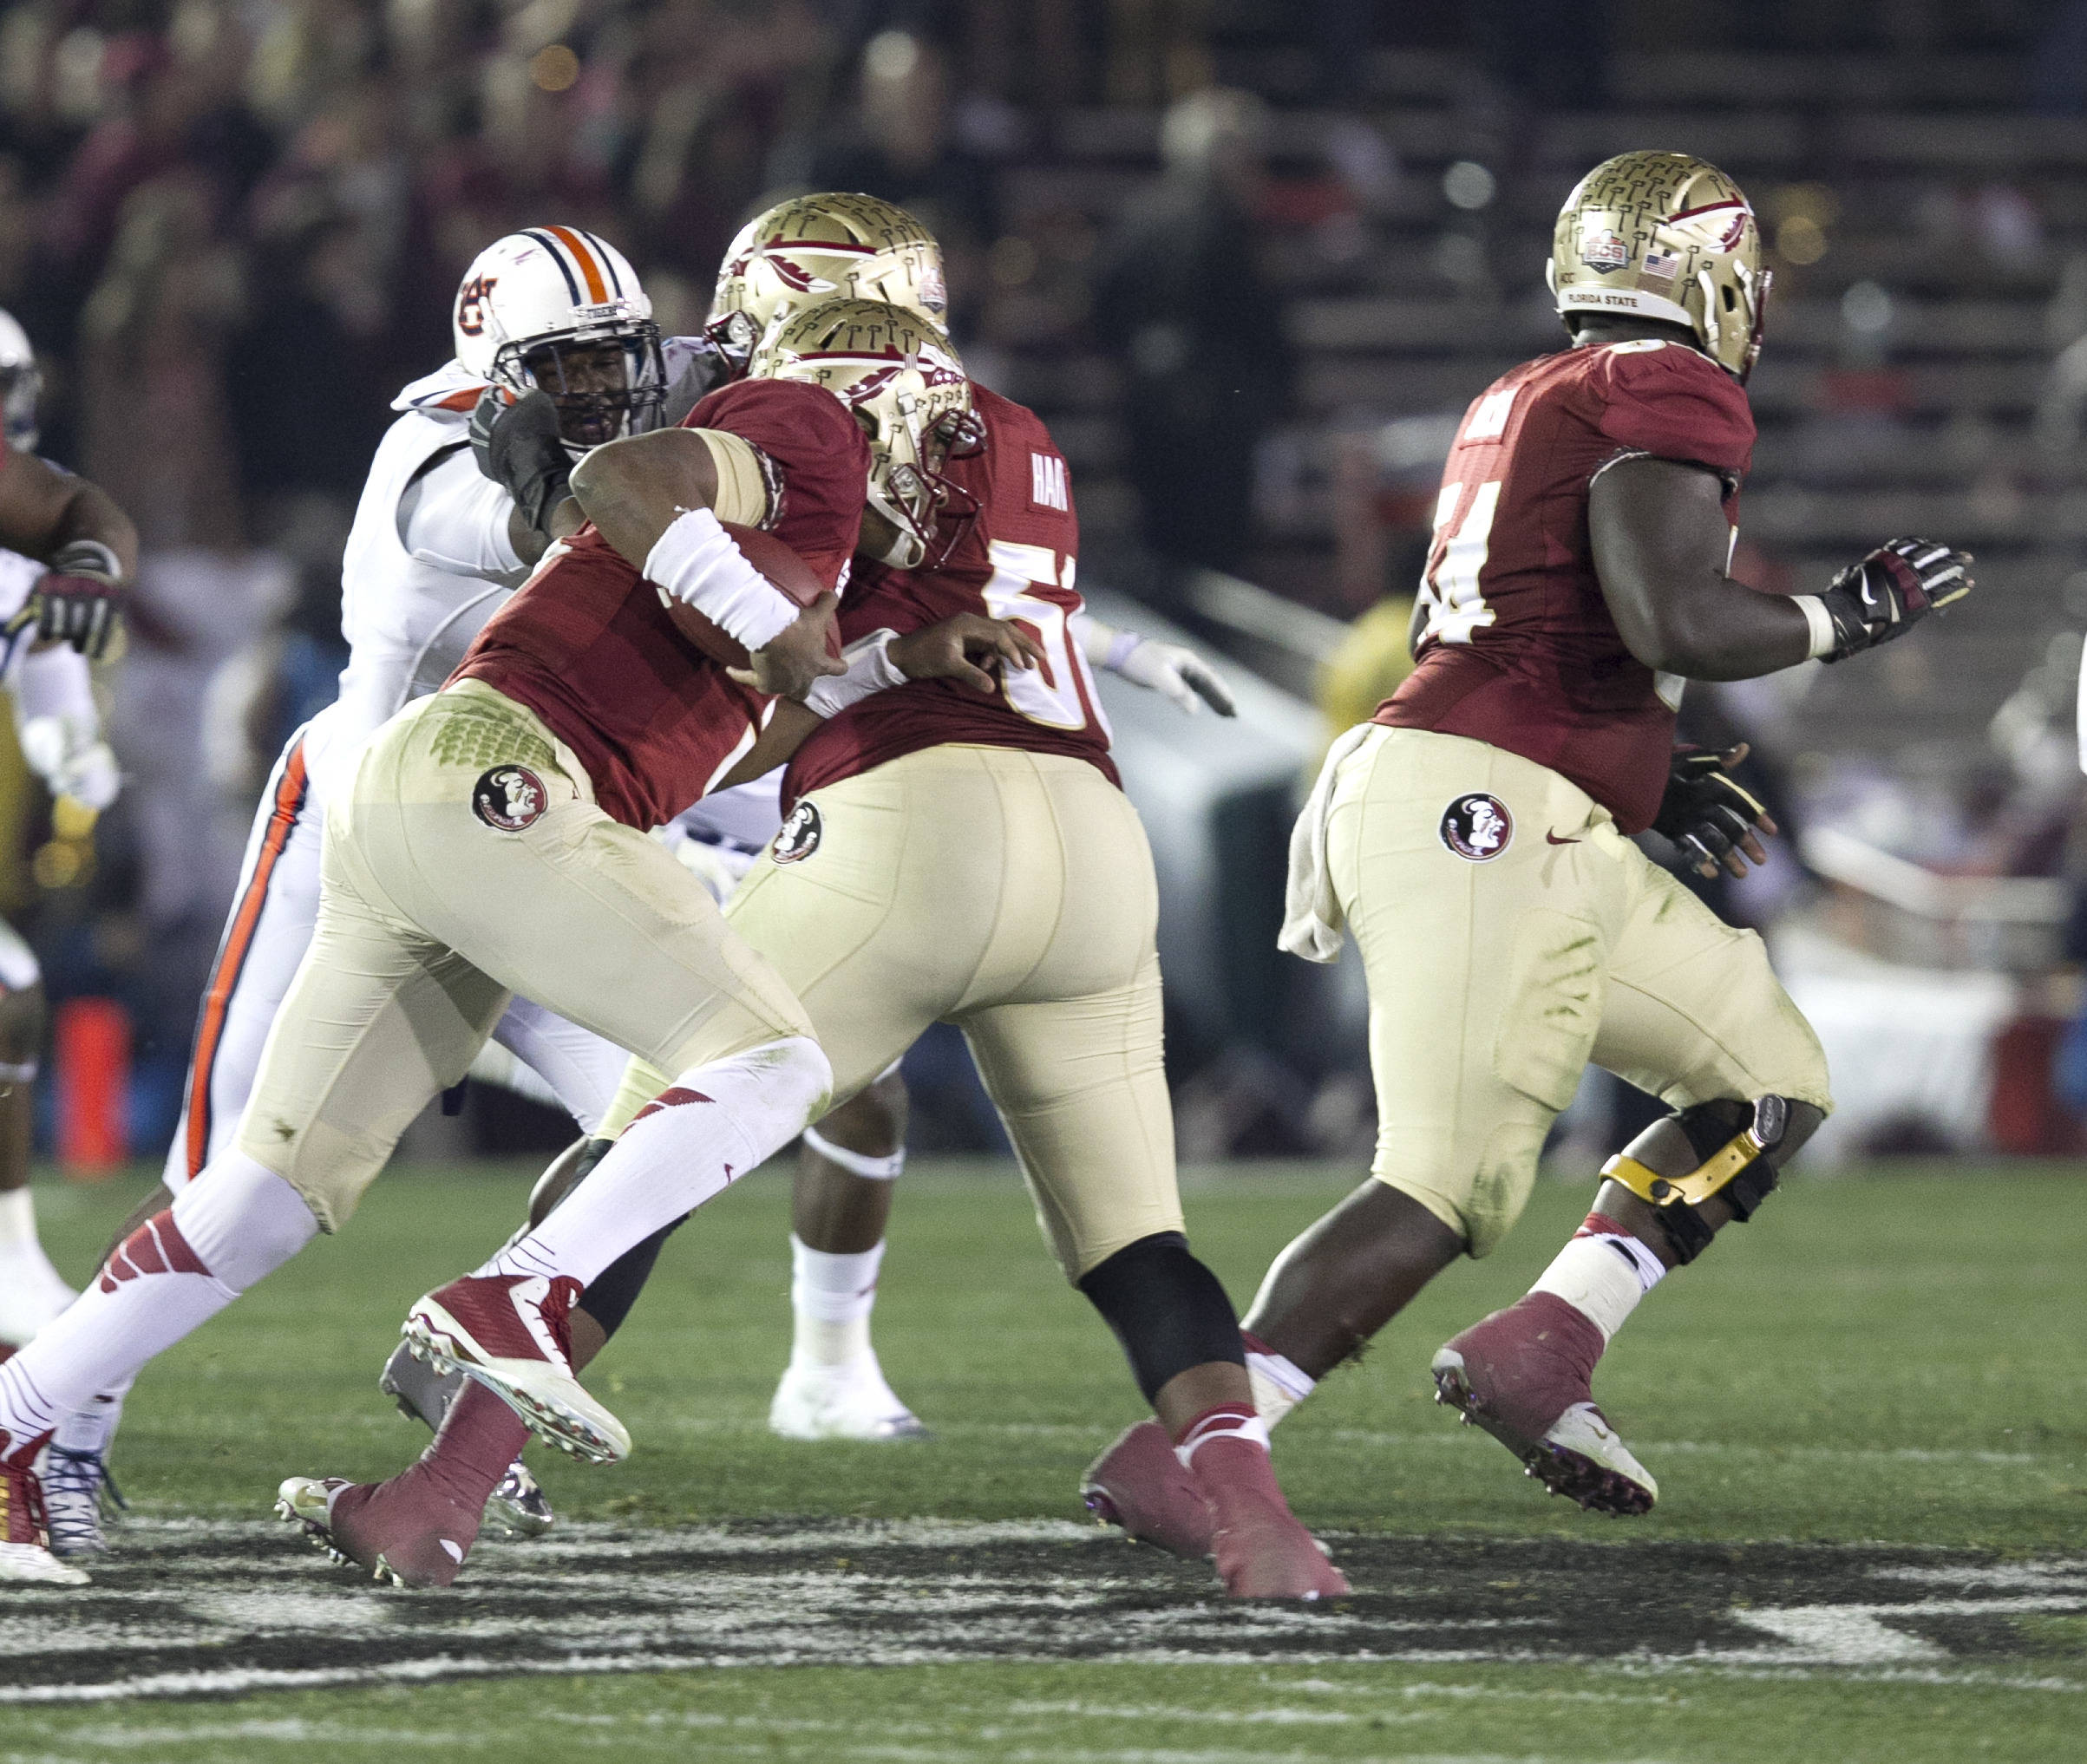 Jameis Winston (5) following his blockers, BCS Championship, FSU vs Auburn, Rose Bowl, Pasadena, CA,  1-06-14,  (Photo by Steve Musco)